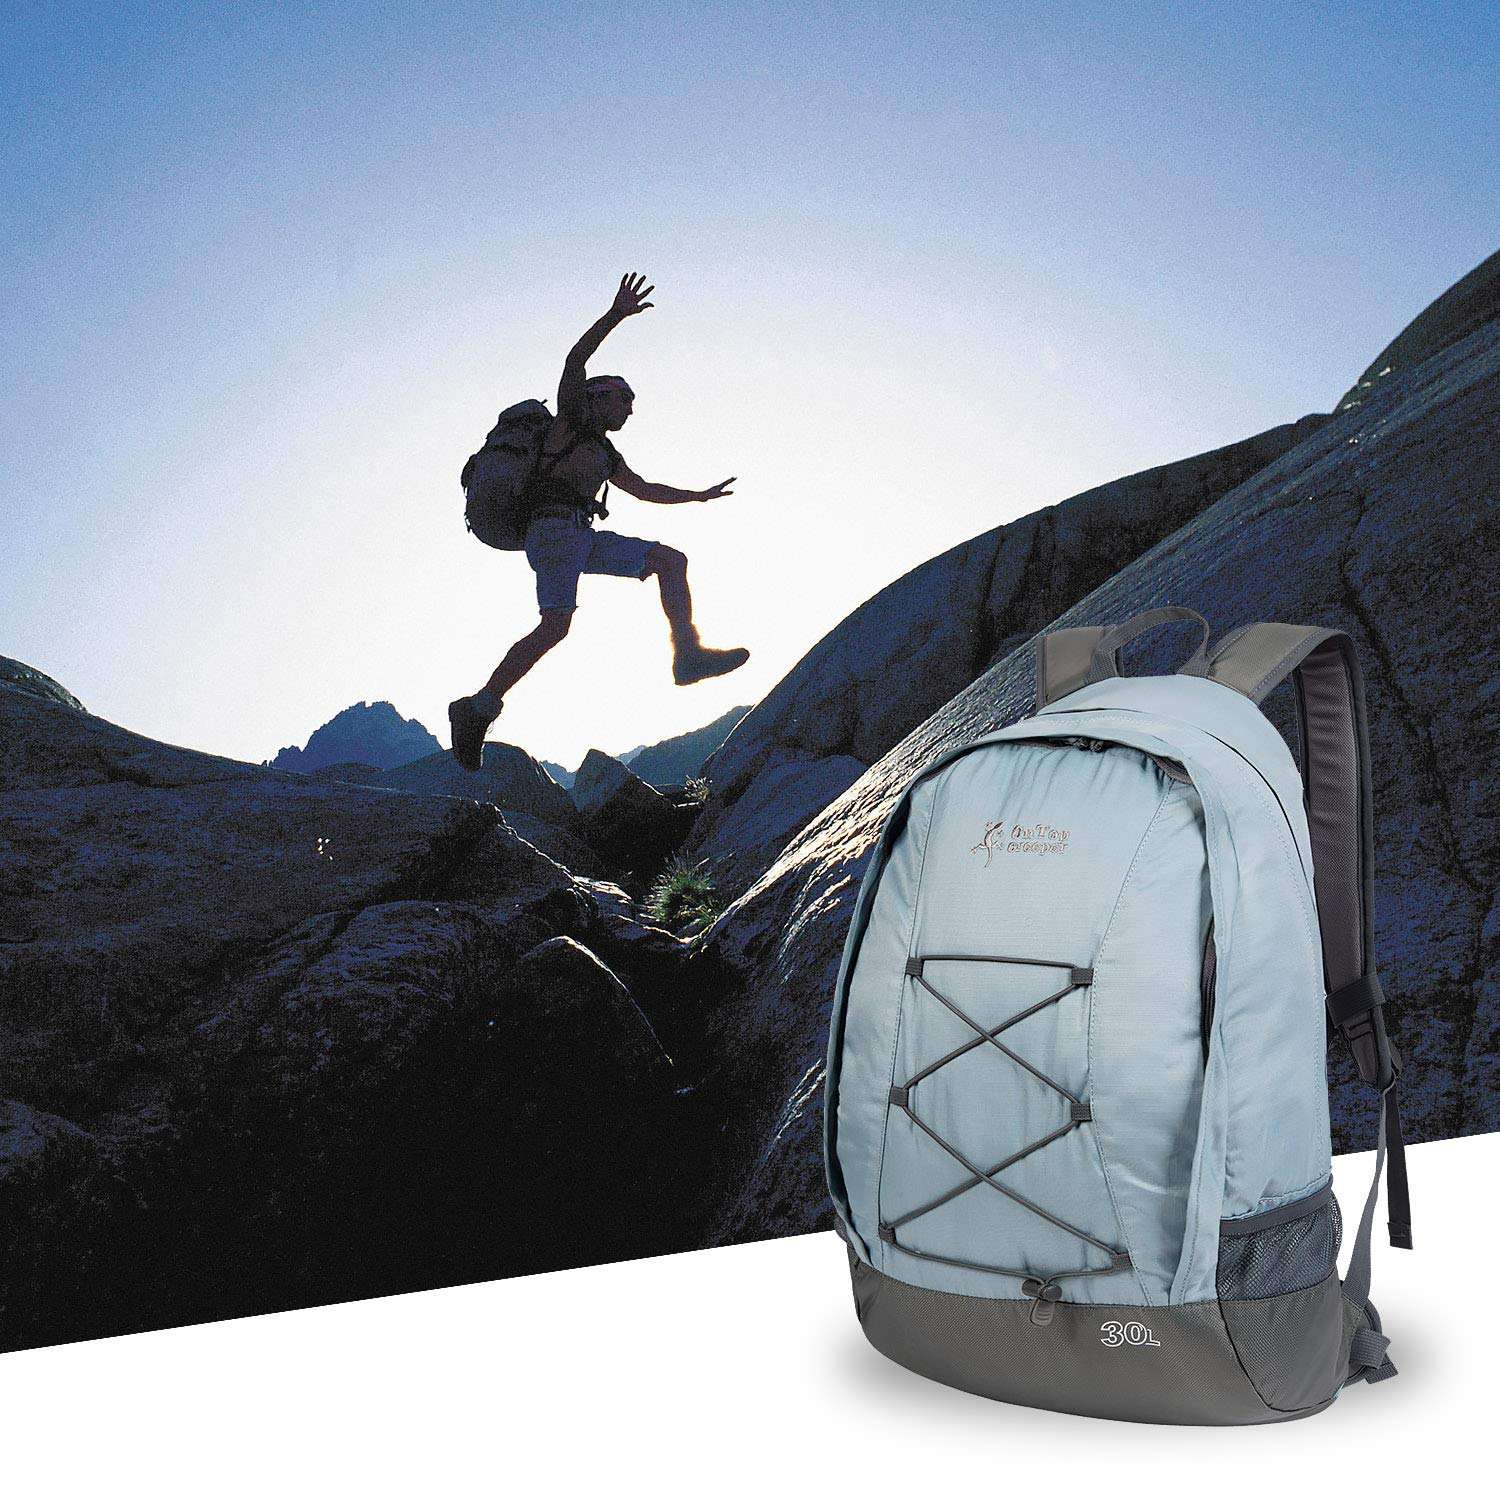 OnTopcreeper Hiking Backpack 30L Lightweight Suspension and Ventilation Travel Daypack Bag for Mountaineering Camping Climbing Cycling Fishing